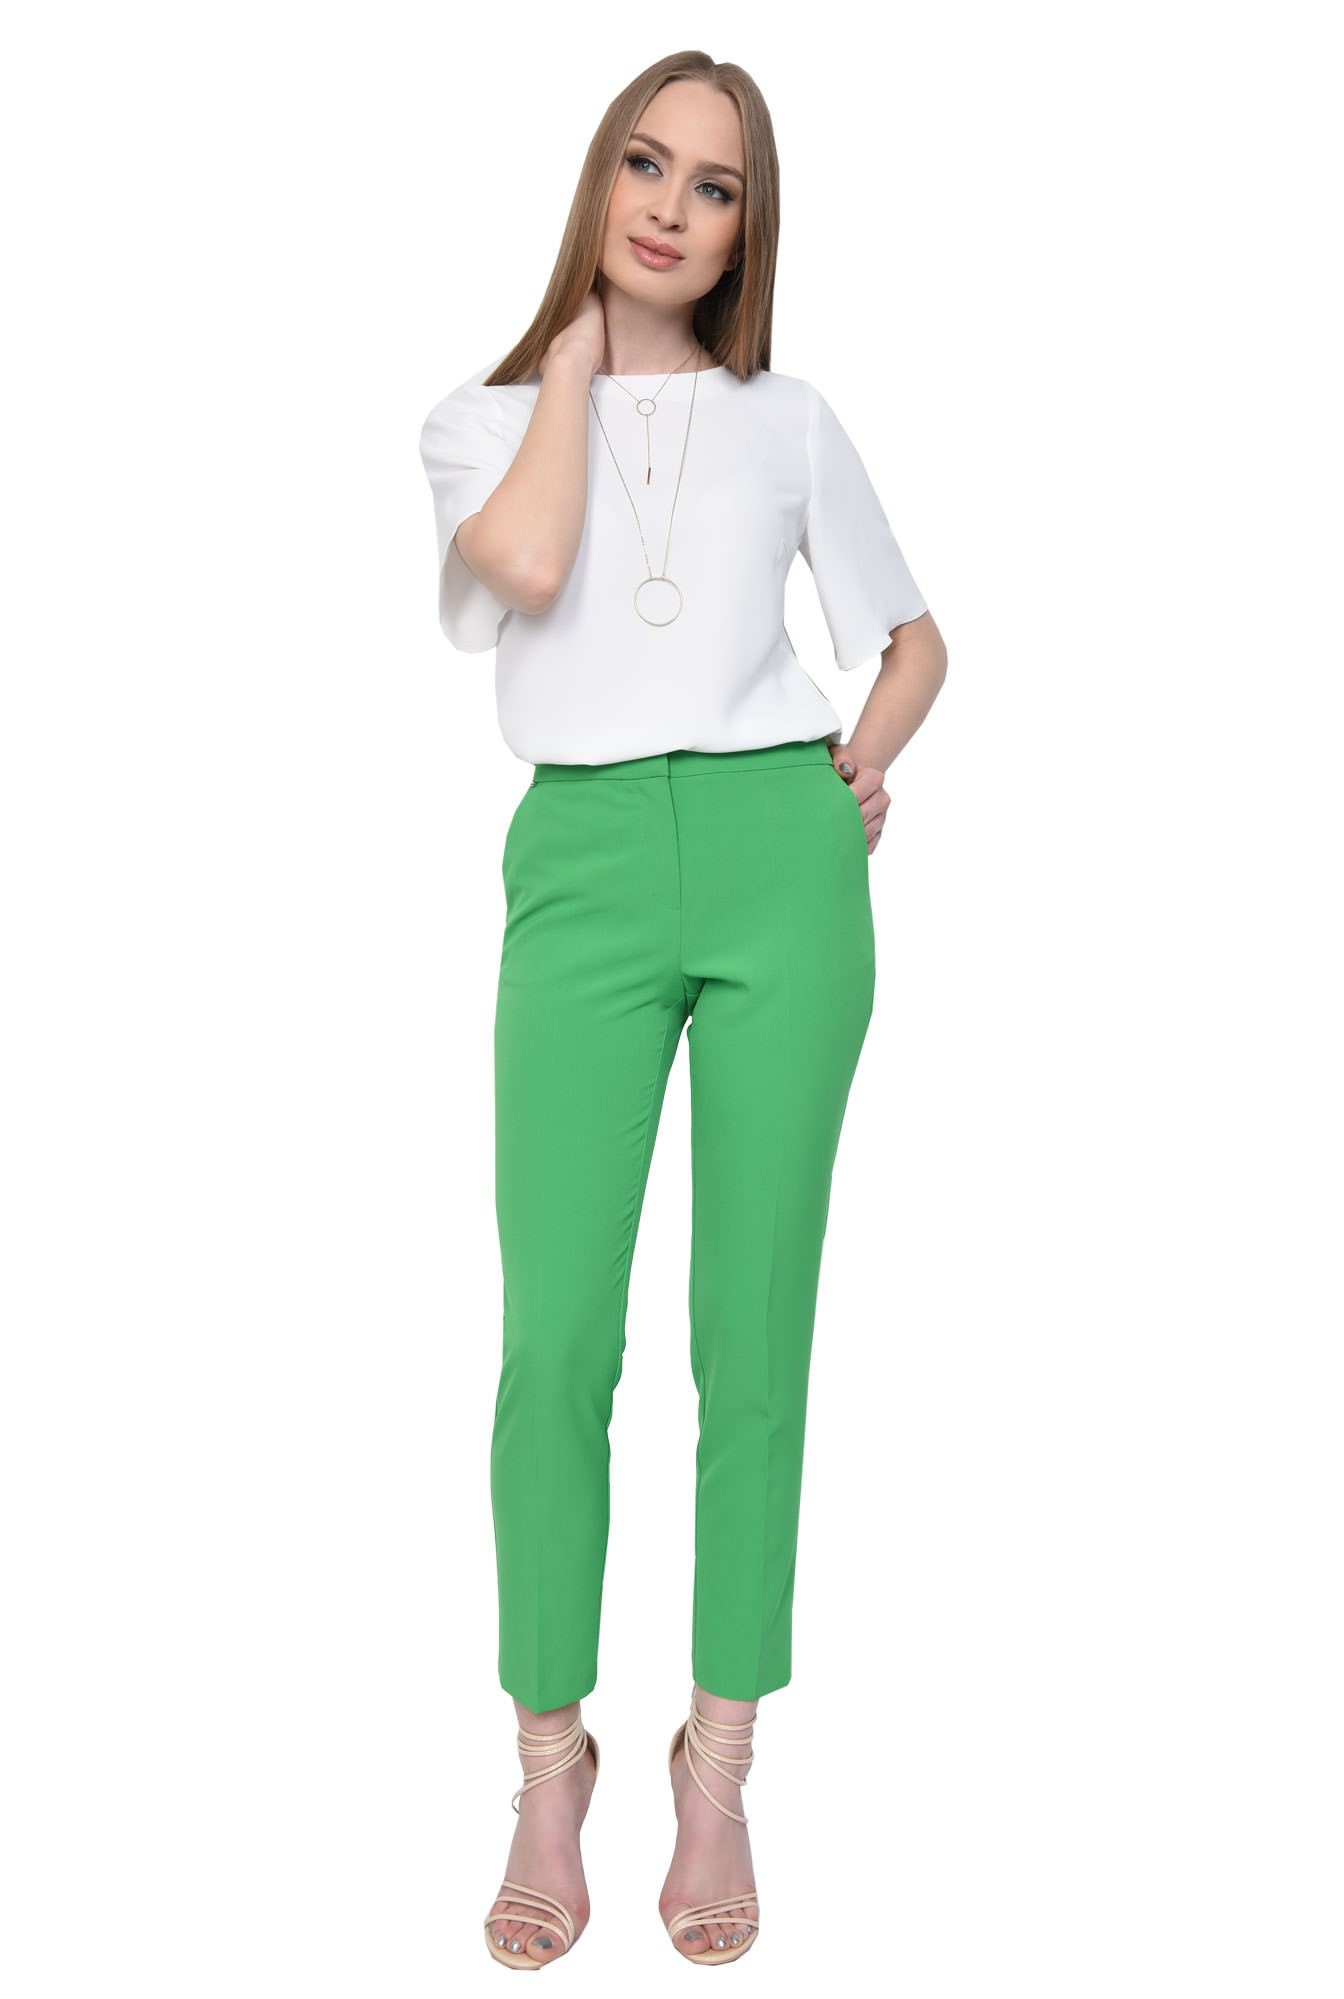 PANTALON OFFICE CONIC PT 142-VERDE